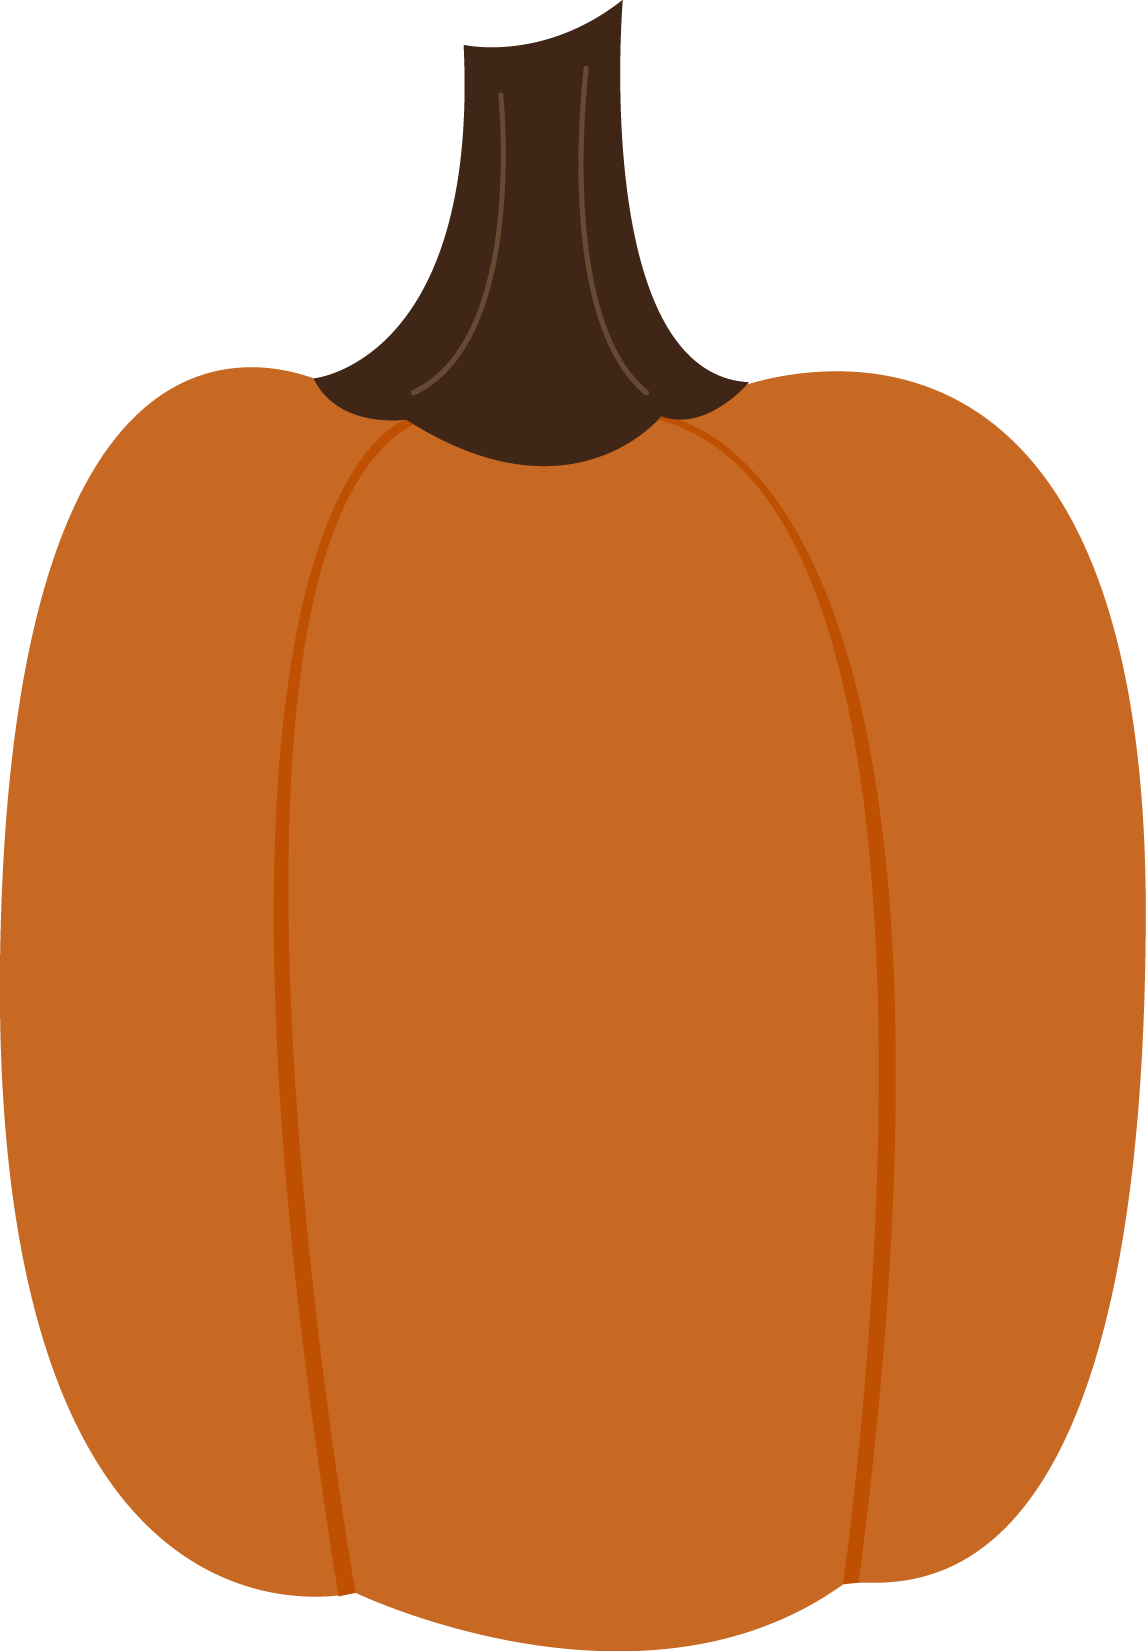 Dancing pumpkin clipart. Stepping out studio of